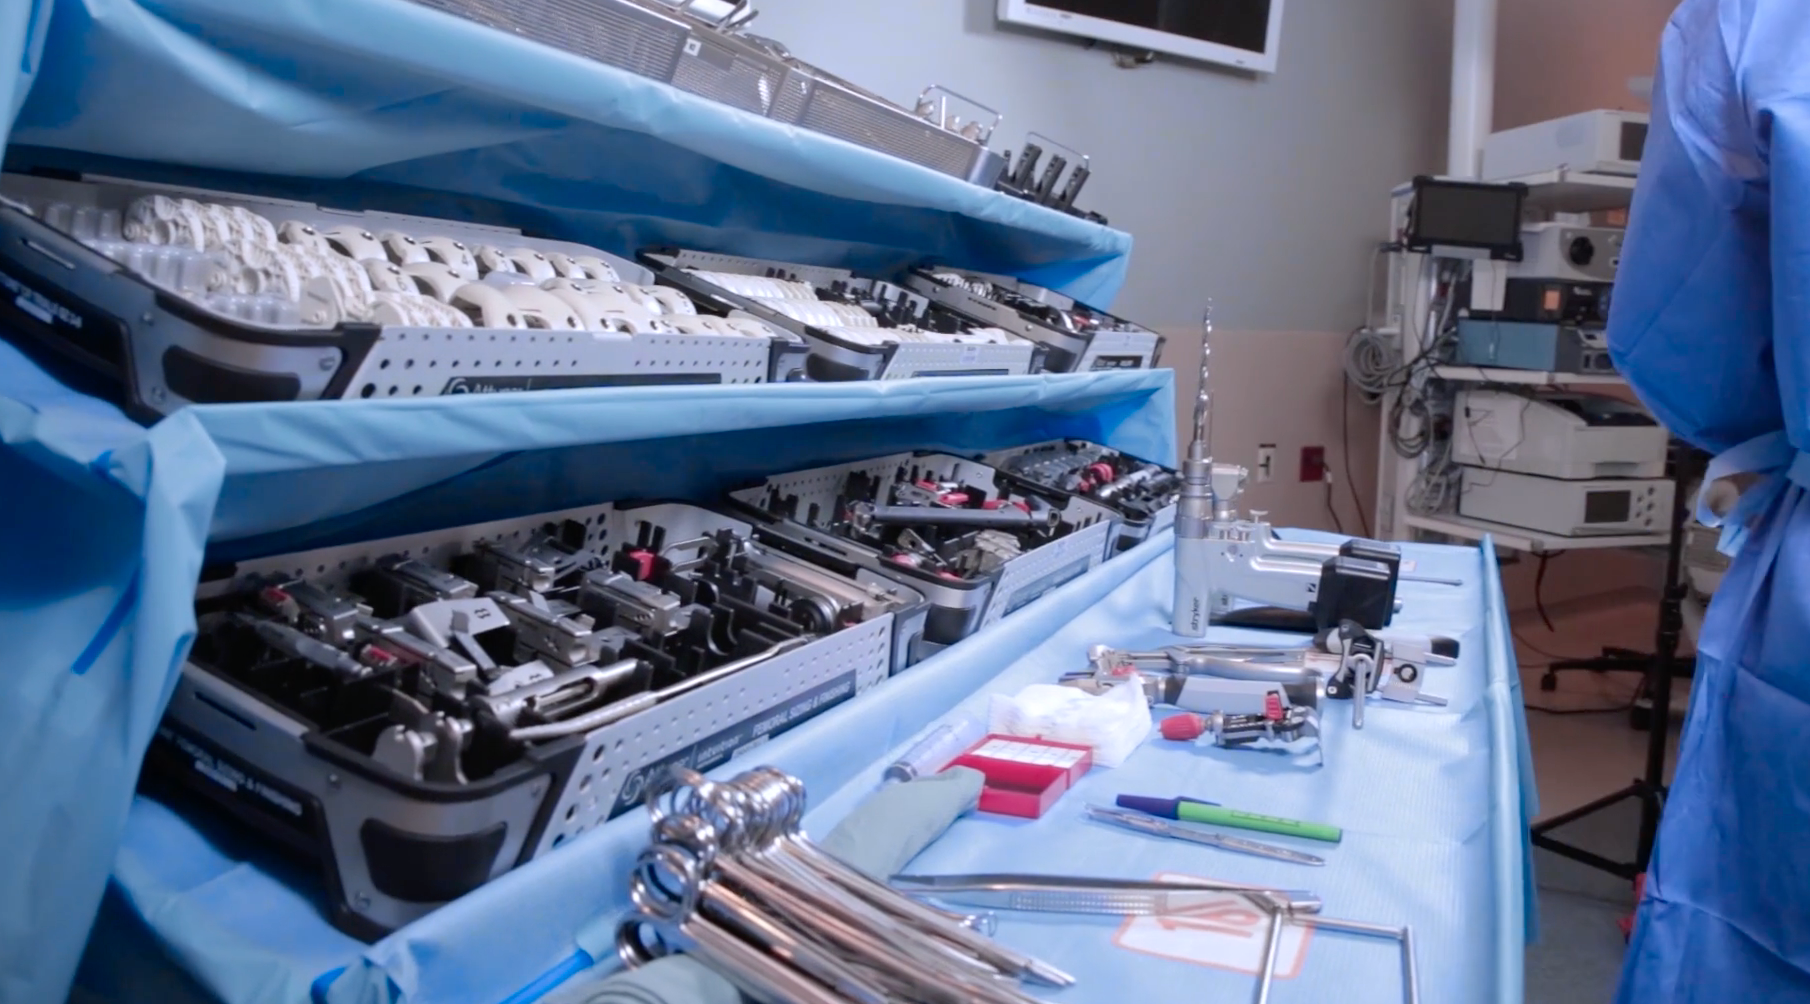 DinamicOR brings a solution to the operating room